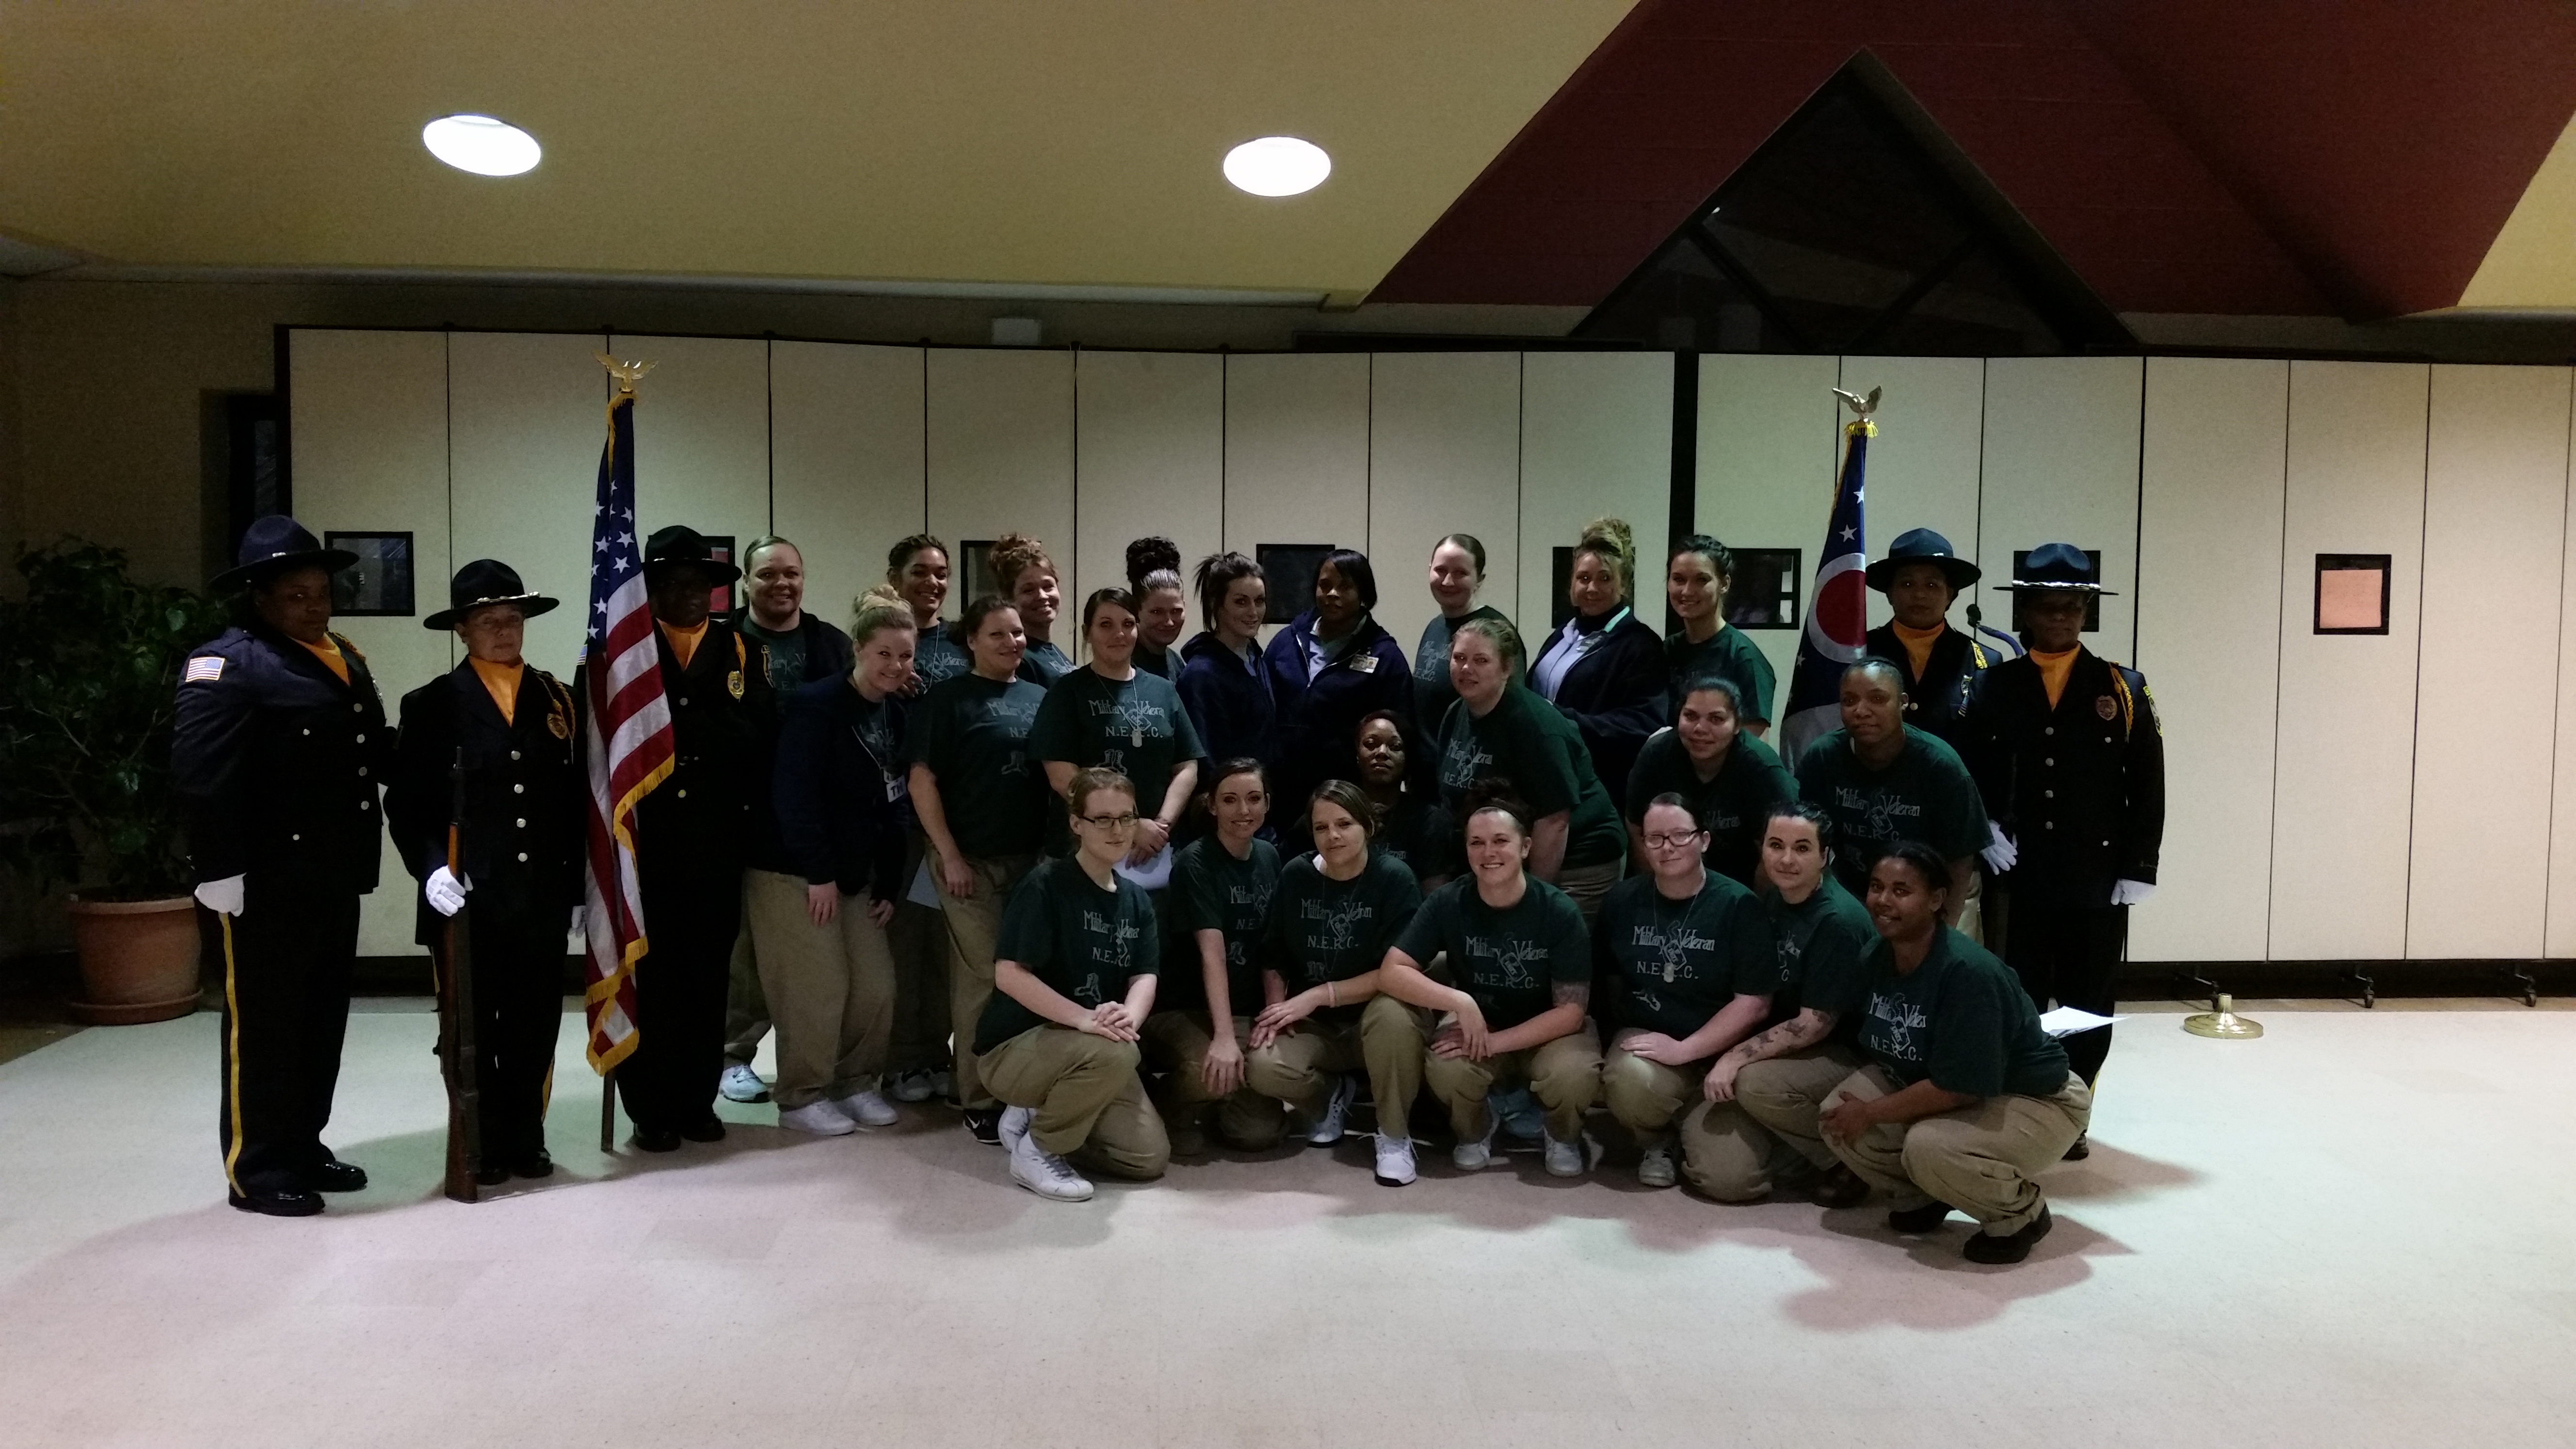 Lorain Correctional Honor Guard Supports NERC Military Program Graduation